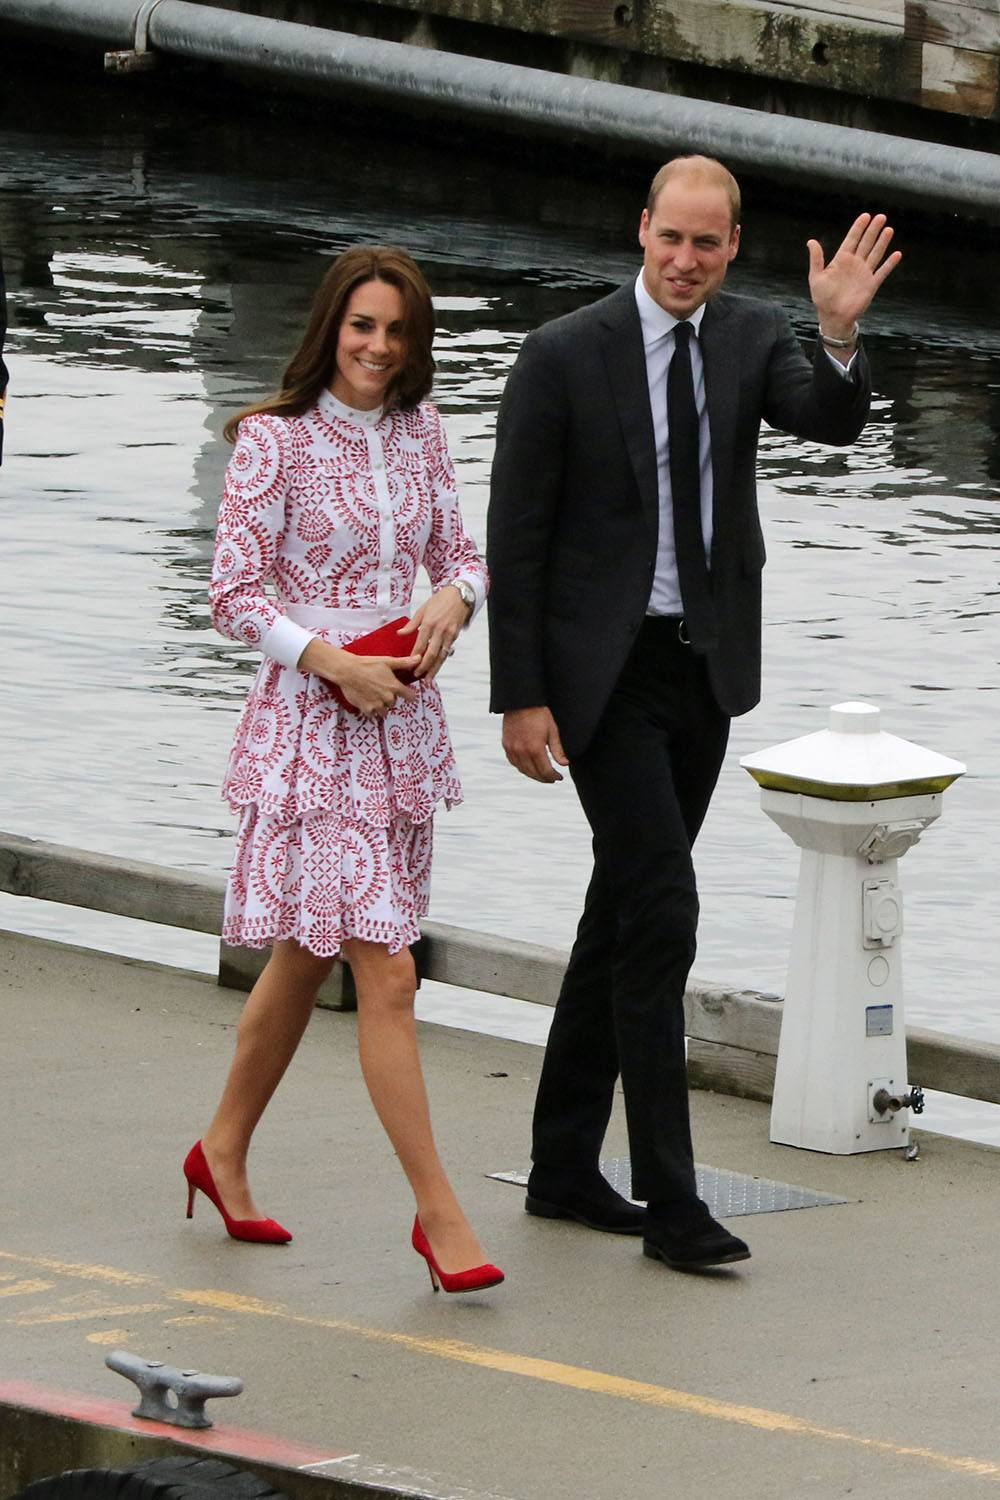 Prince William and Catherine, Duchess of Cambridge arriving in Vancouver (Lindsay Barker/Daily Hive)